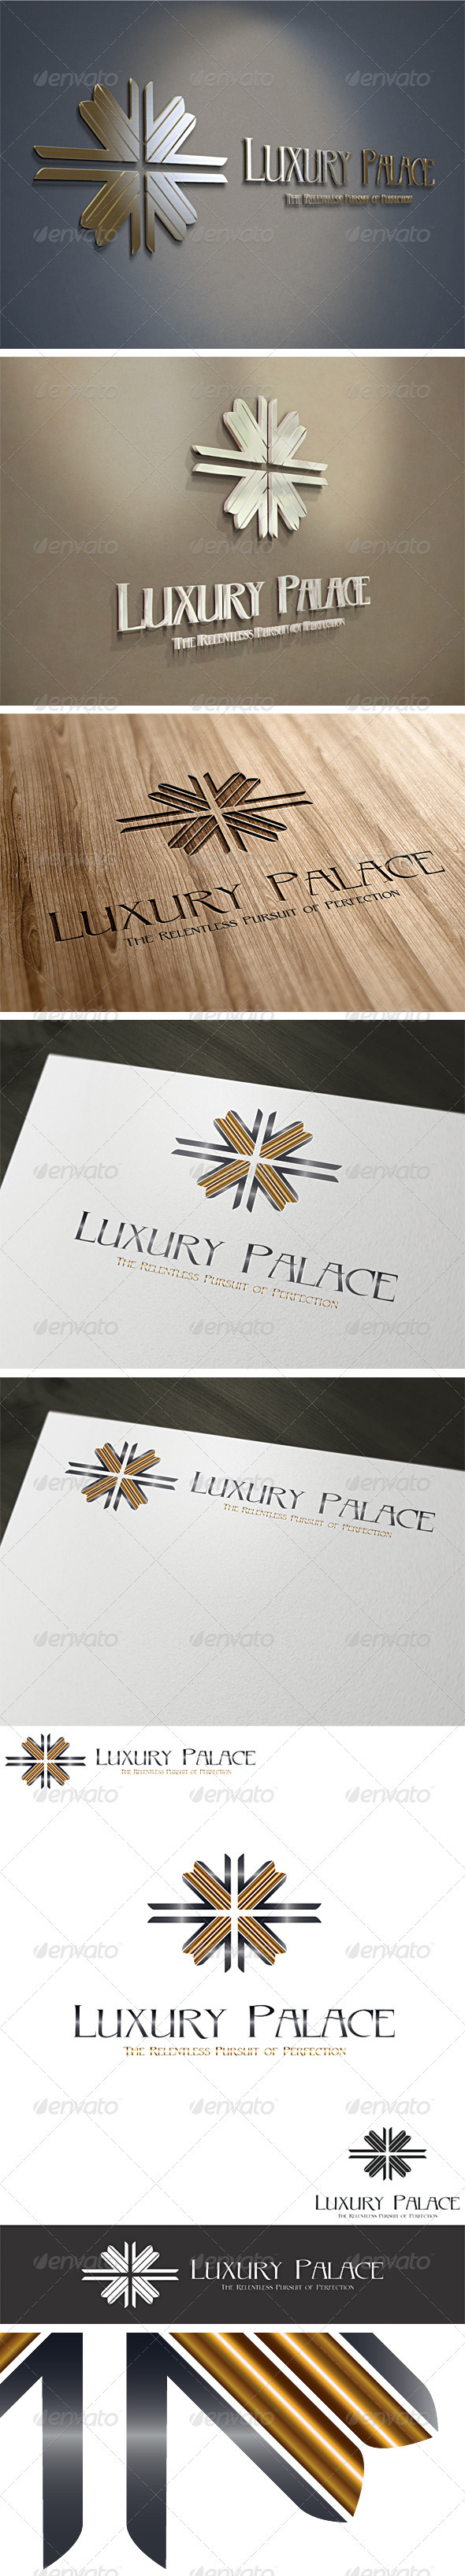 GraphicRiver 3D Luxury Hotels Logo Template V3 2527816